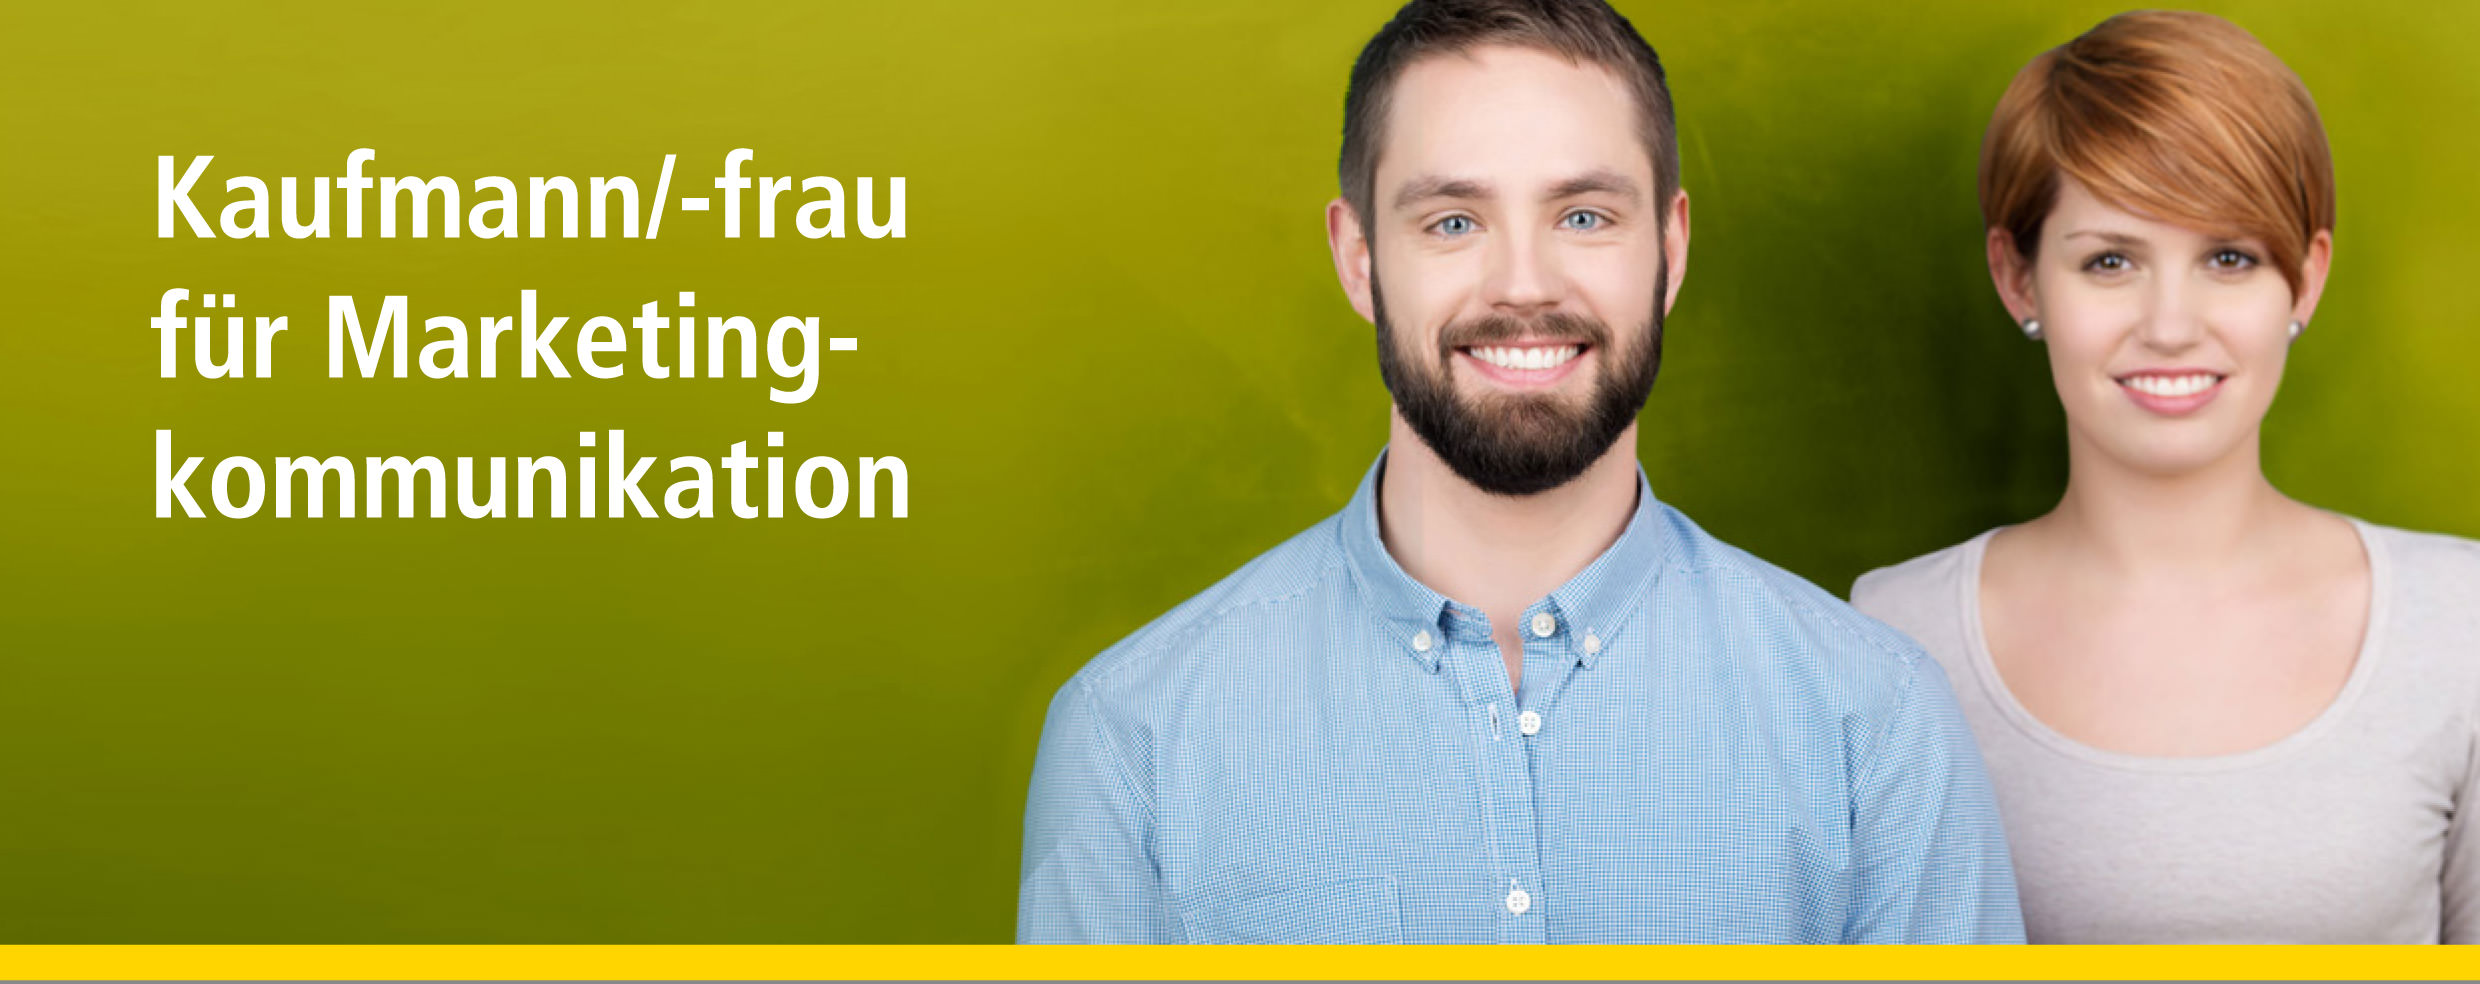 Marketingkommunikation header